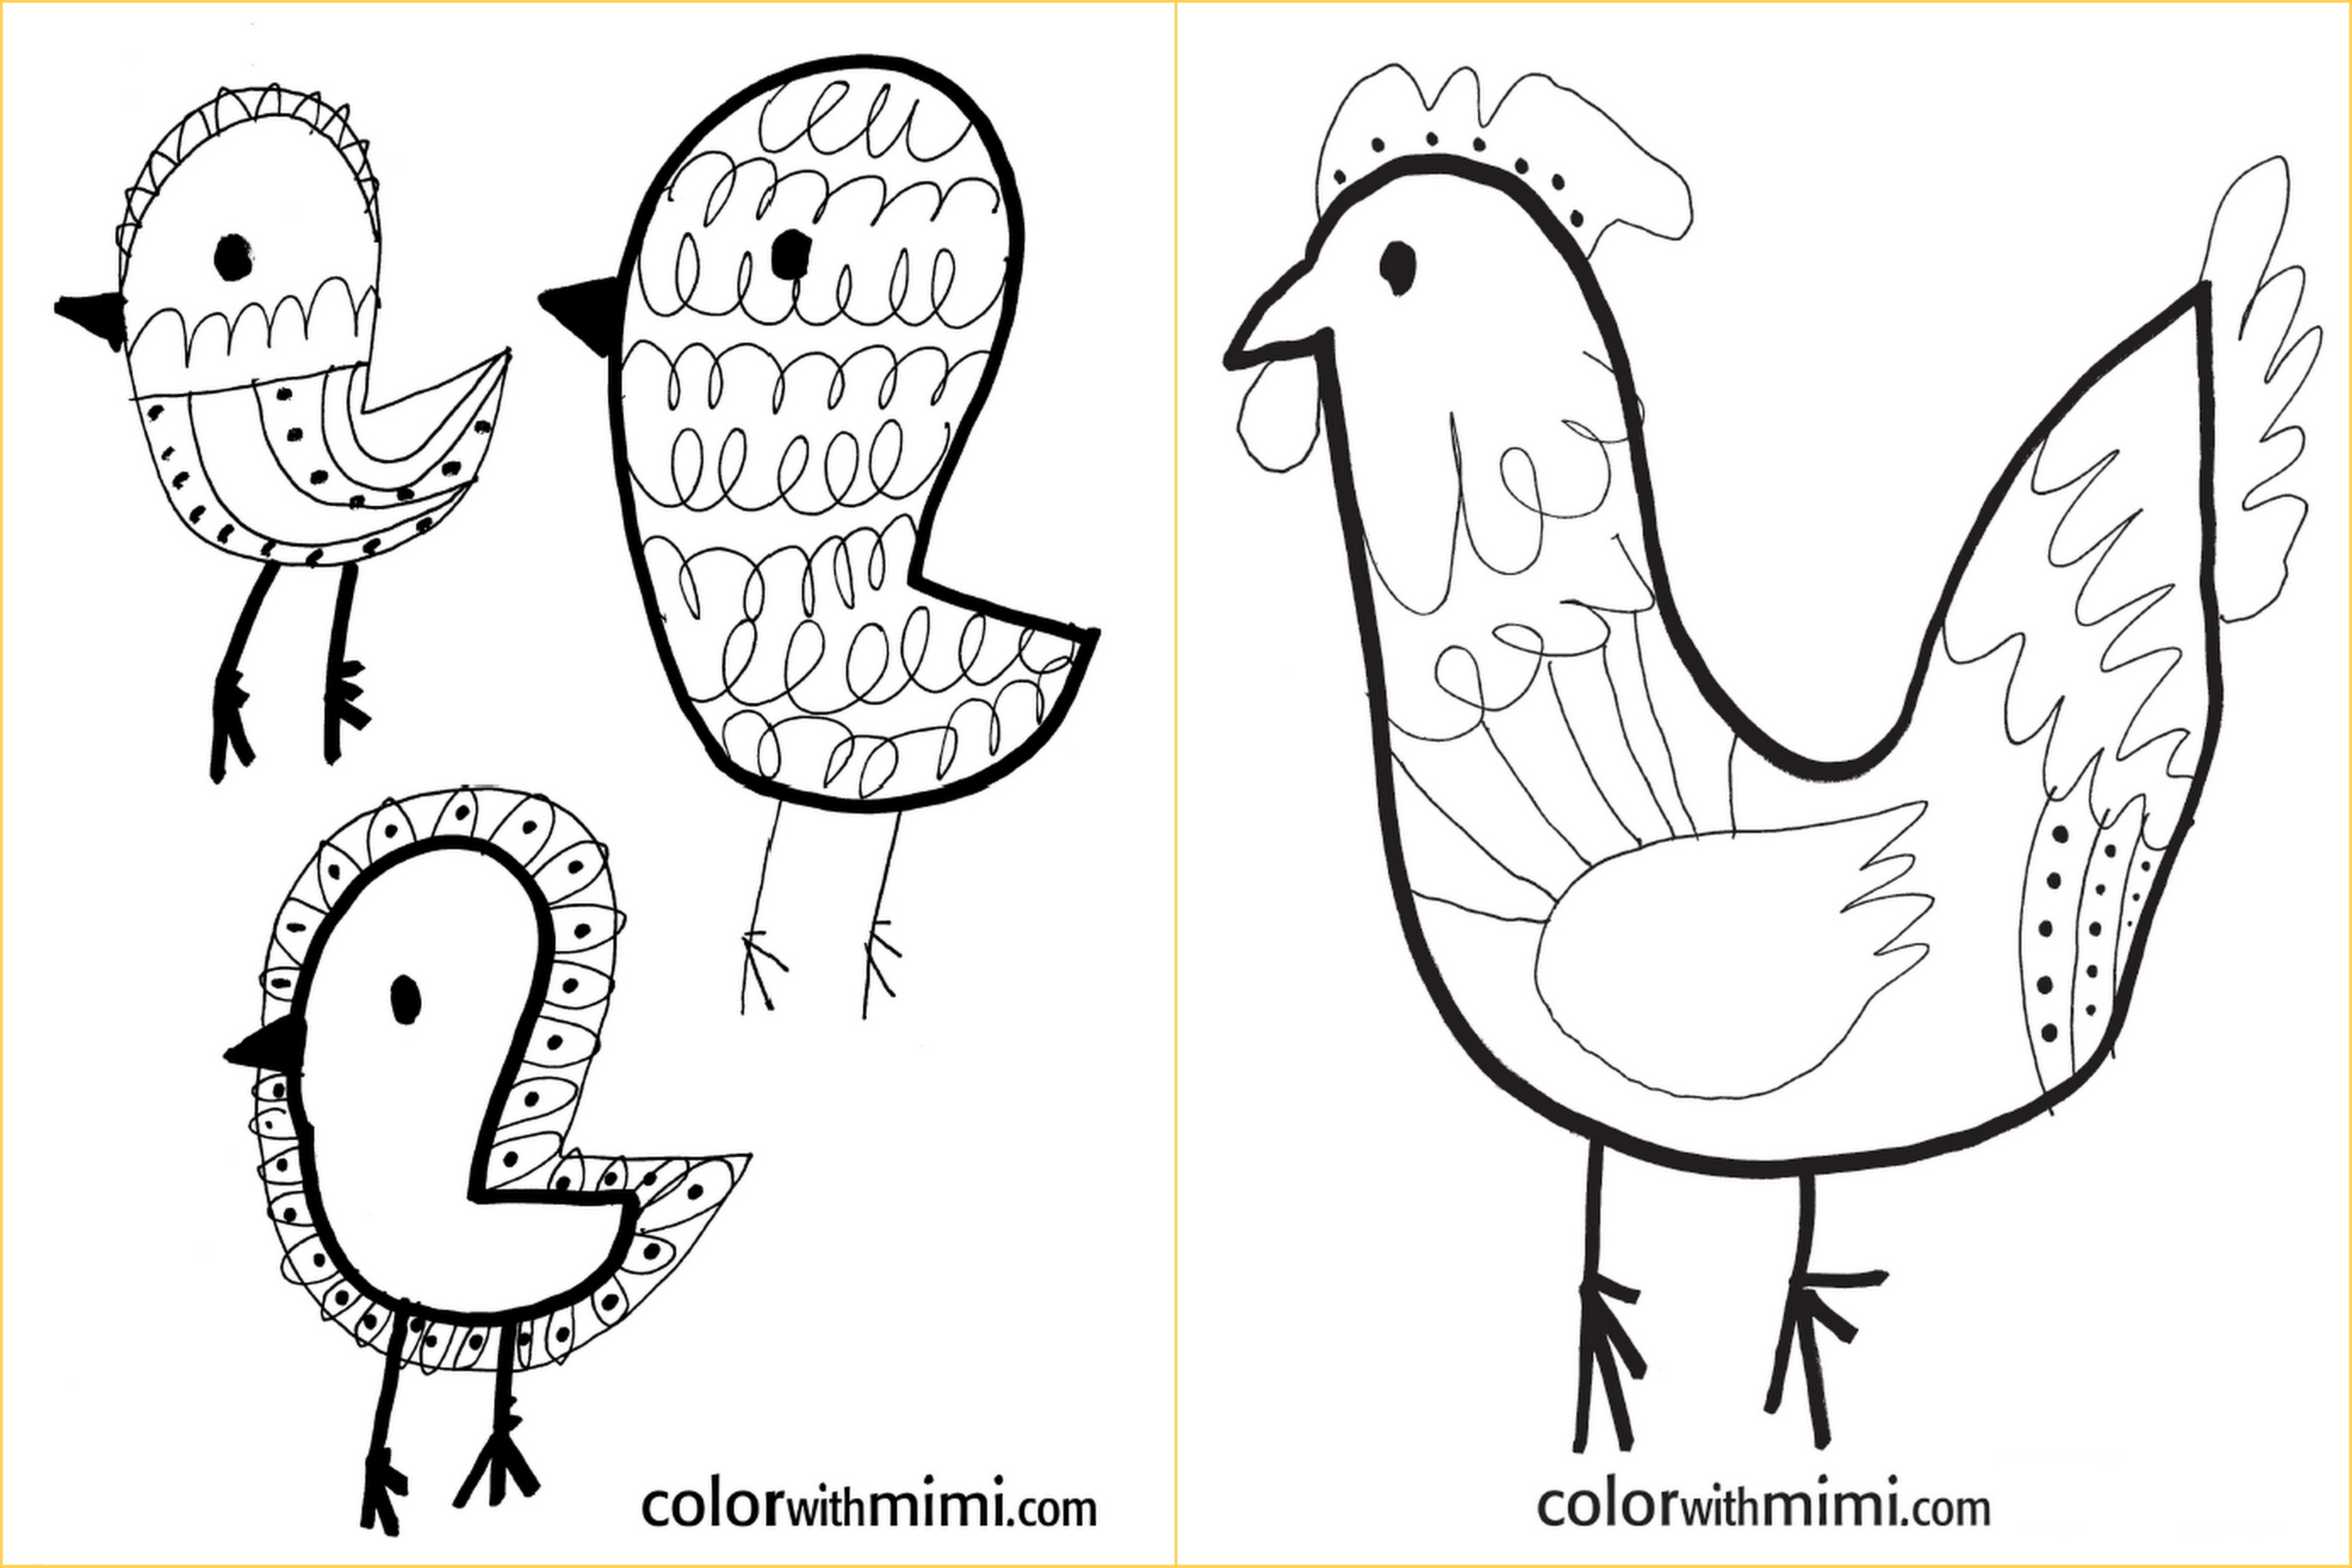 unplugged: coloring pages